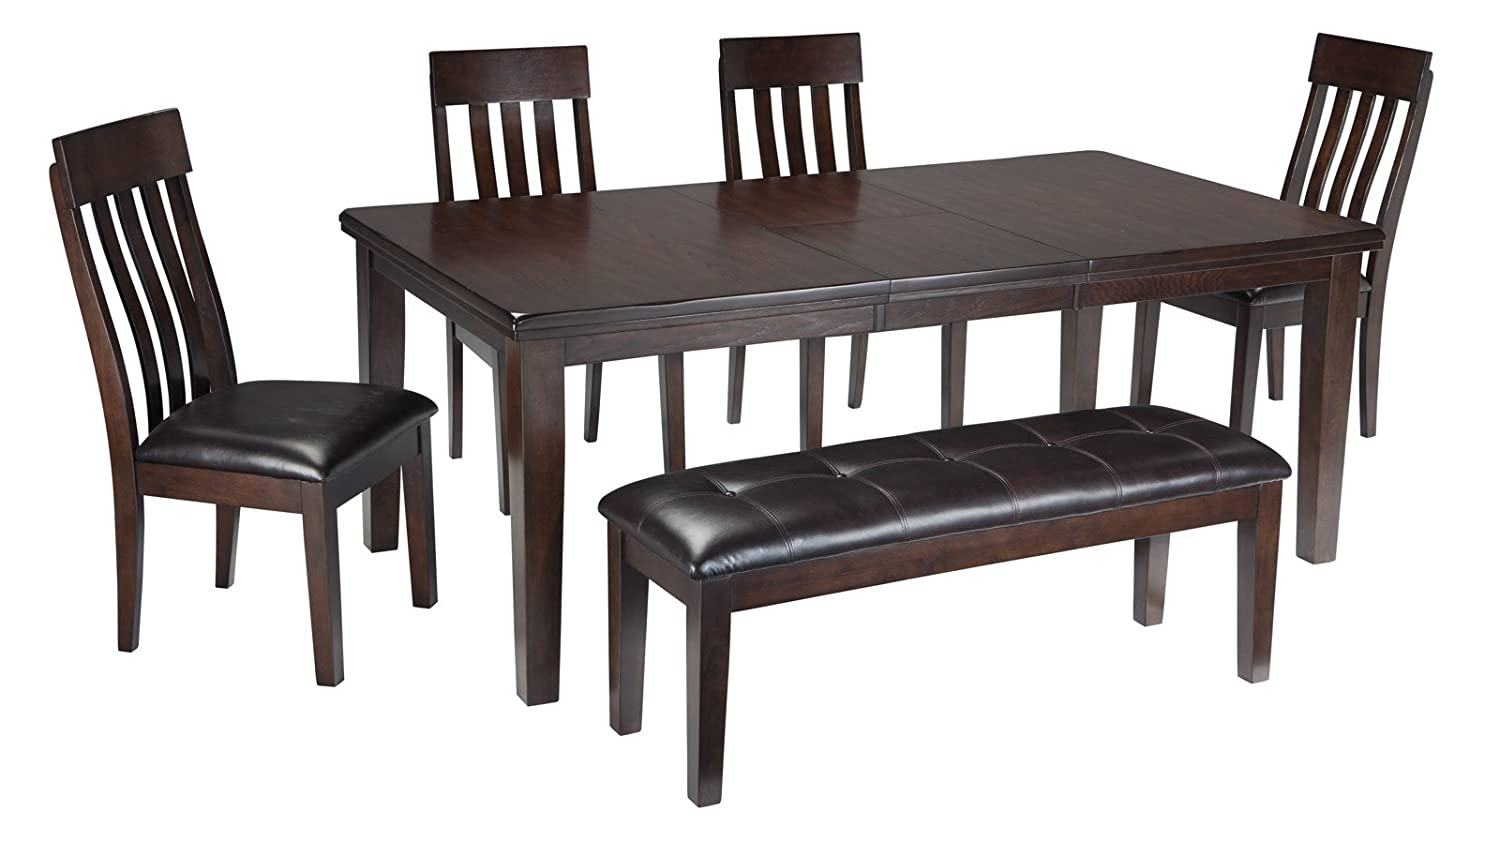 amazoncom signature design by ashley d596 35 dining room table tables - Wooden Dining Table With Chairs